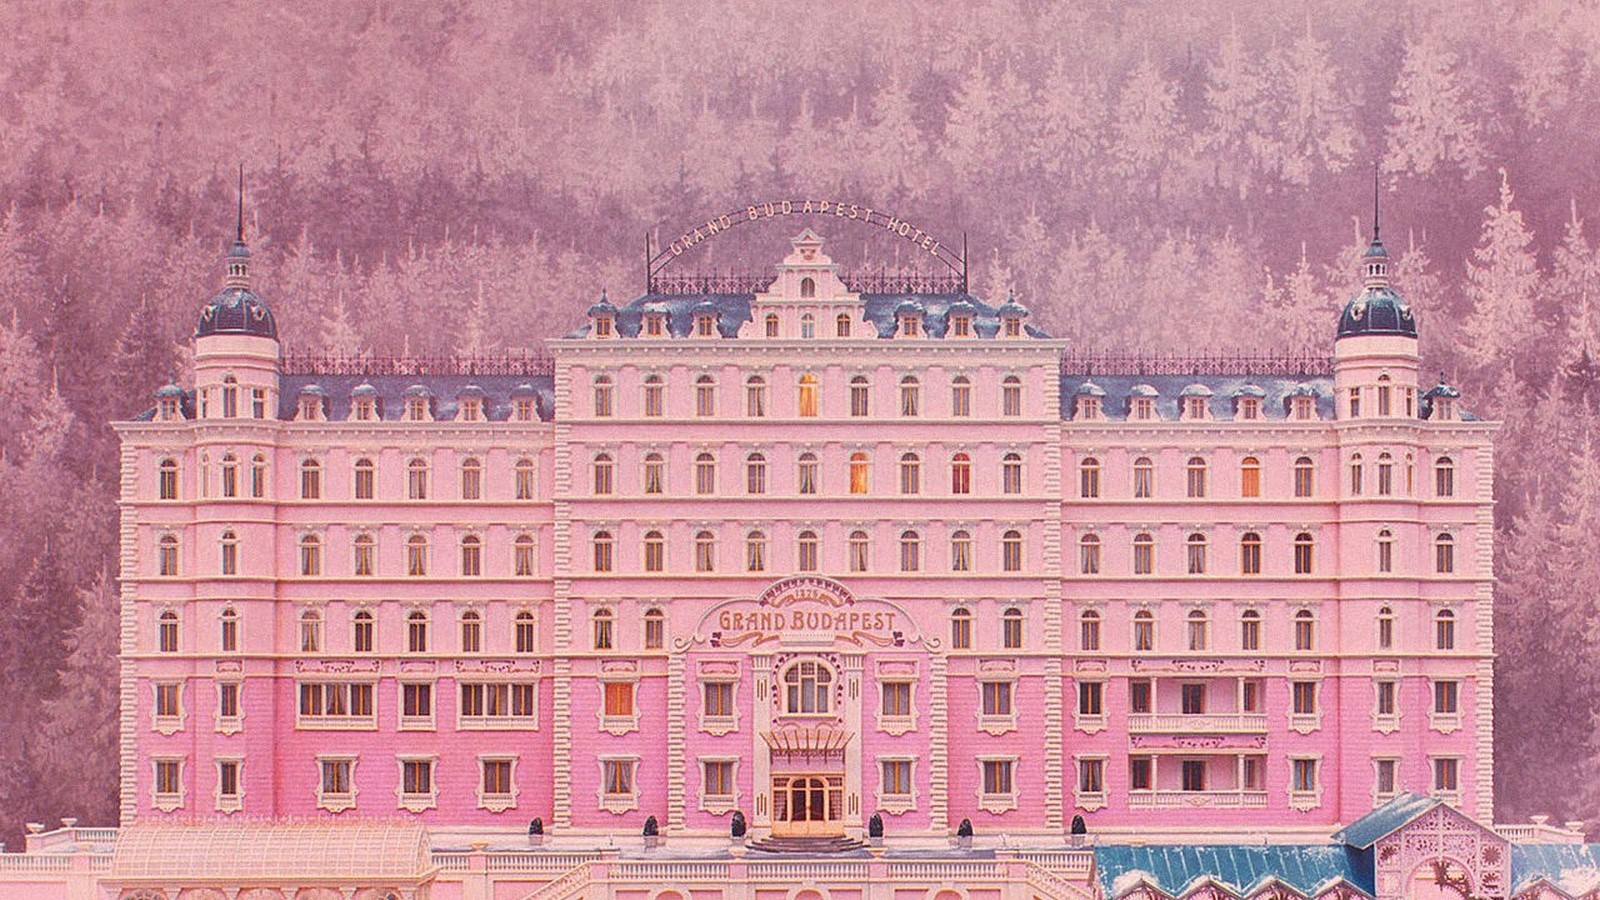 Wes Anderson as an Architect - Sheet2